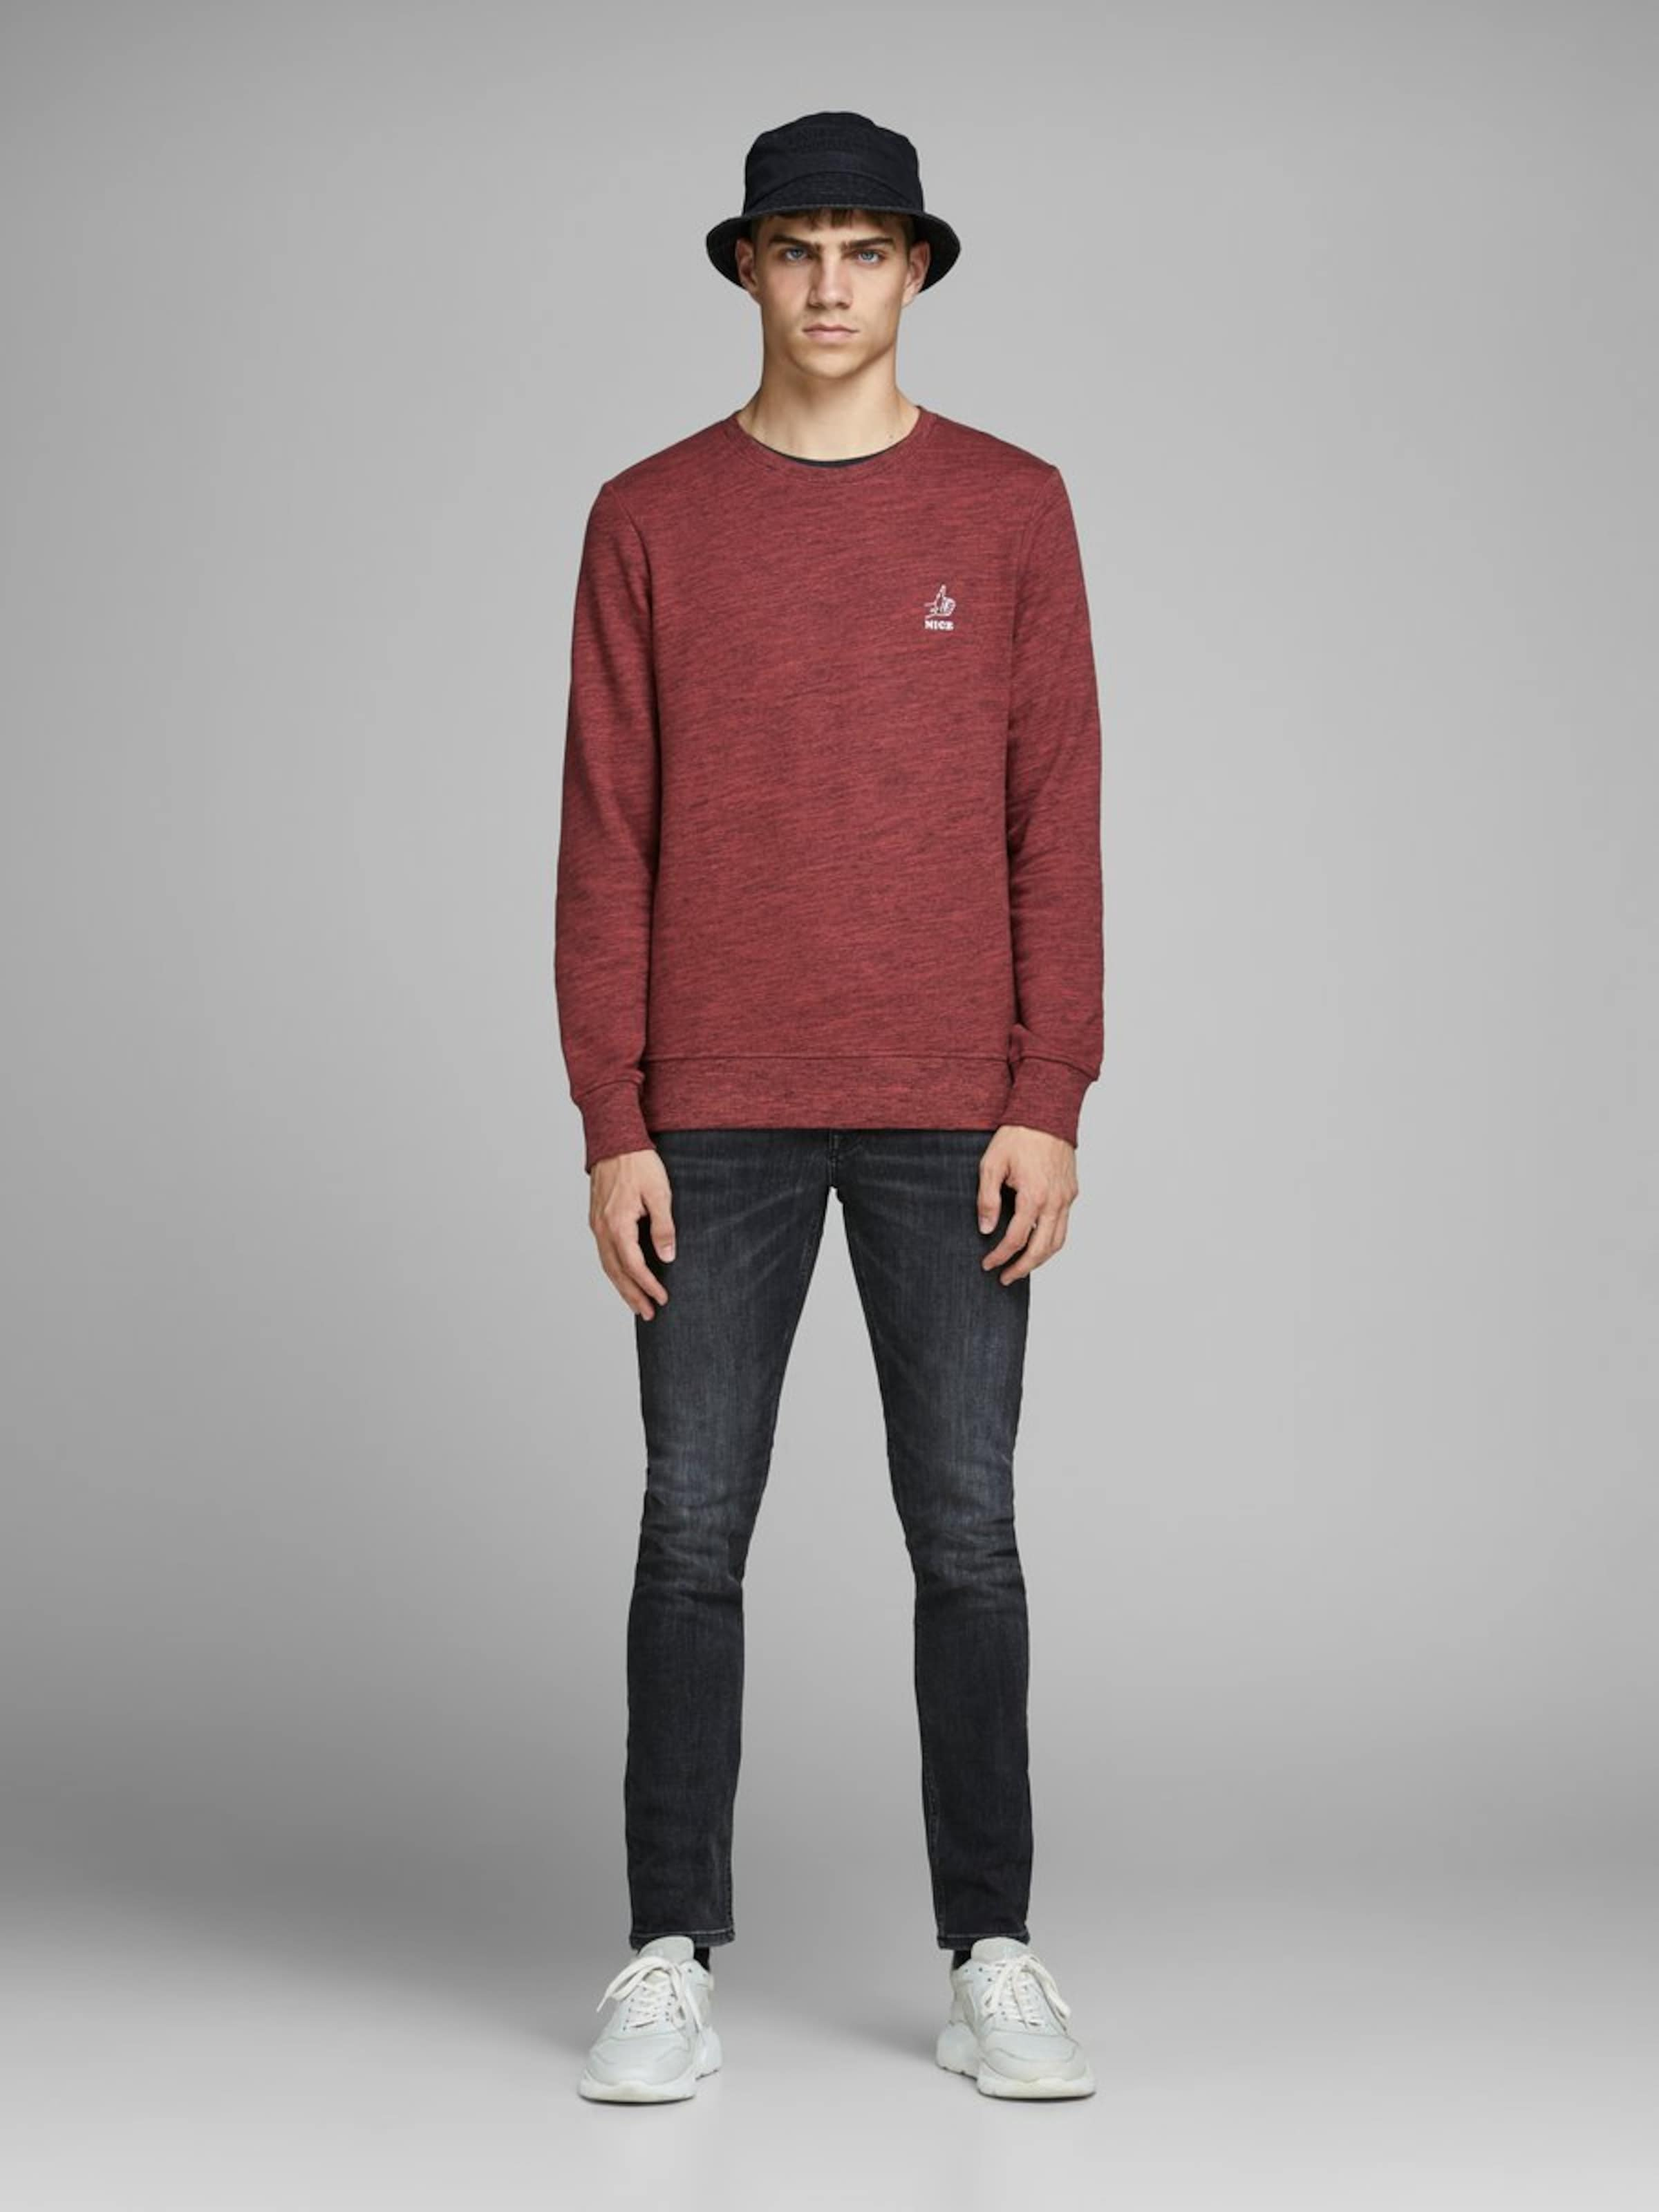 Jackamp; Jones In Jackamp; Jones In Sweatshirt Rotmeliert Sweatshirt EH9W2IDYe